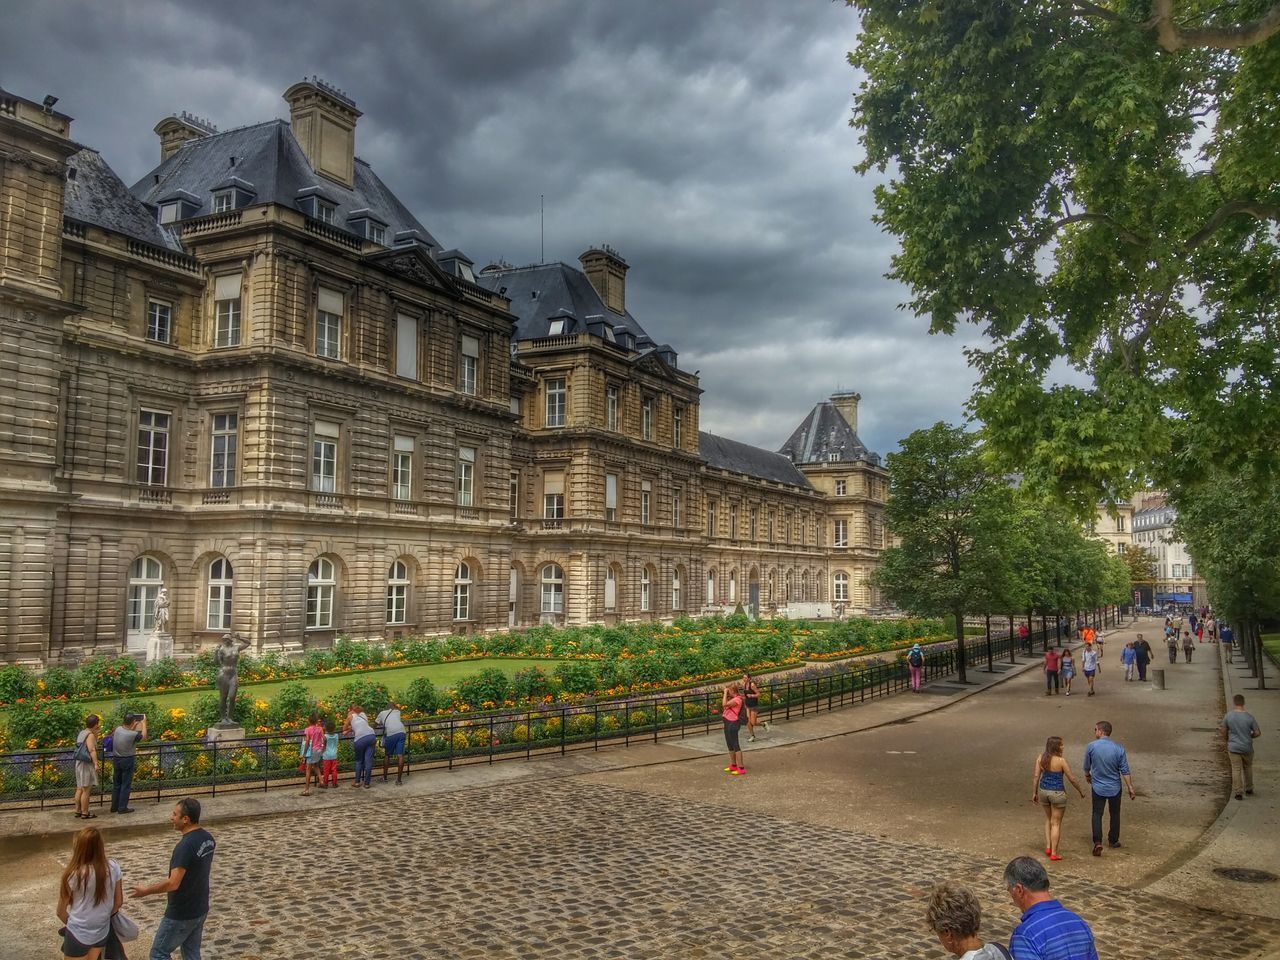 Architecture Travel Destinations Built Structure Cloud - Sky Sky People Building Exterior Large Group Of People Outdoors Day City Crowd Tree Politics And Government Paris ❤ Jardin Du Luxembourg Honeymoon